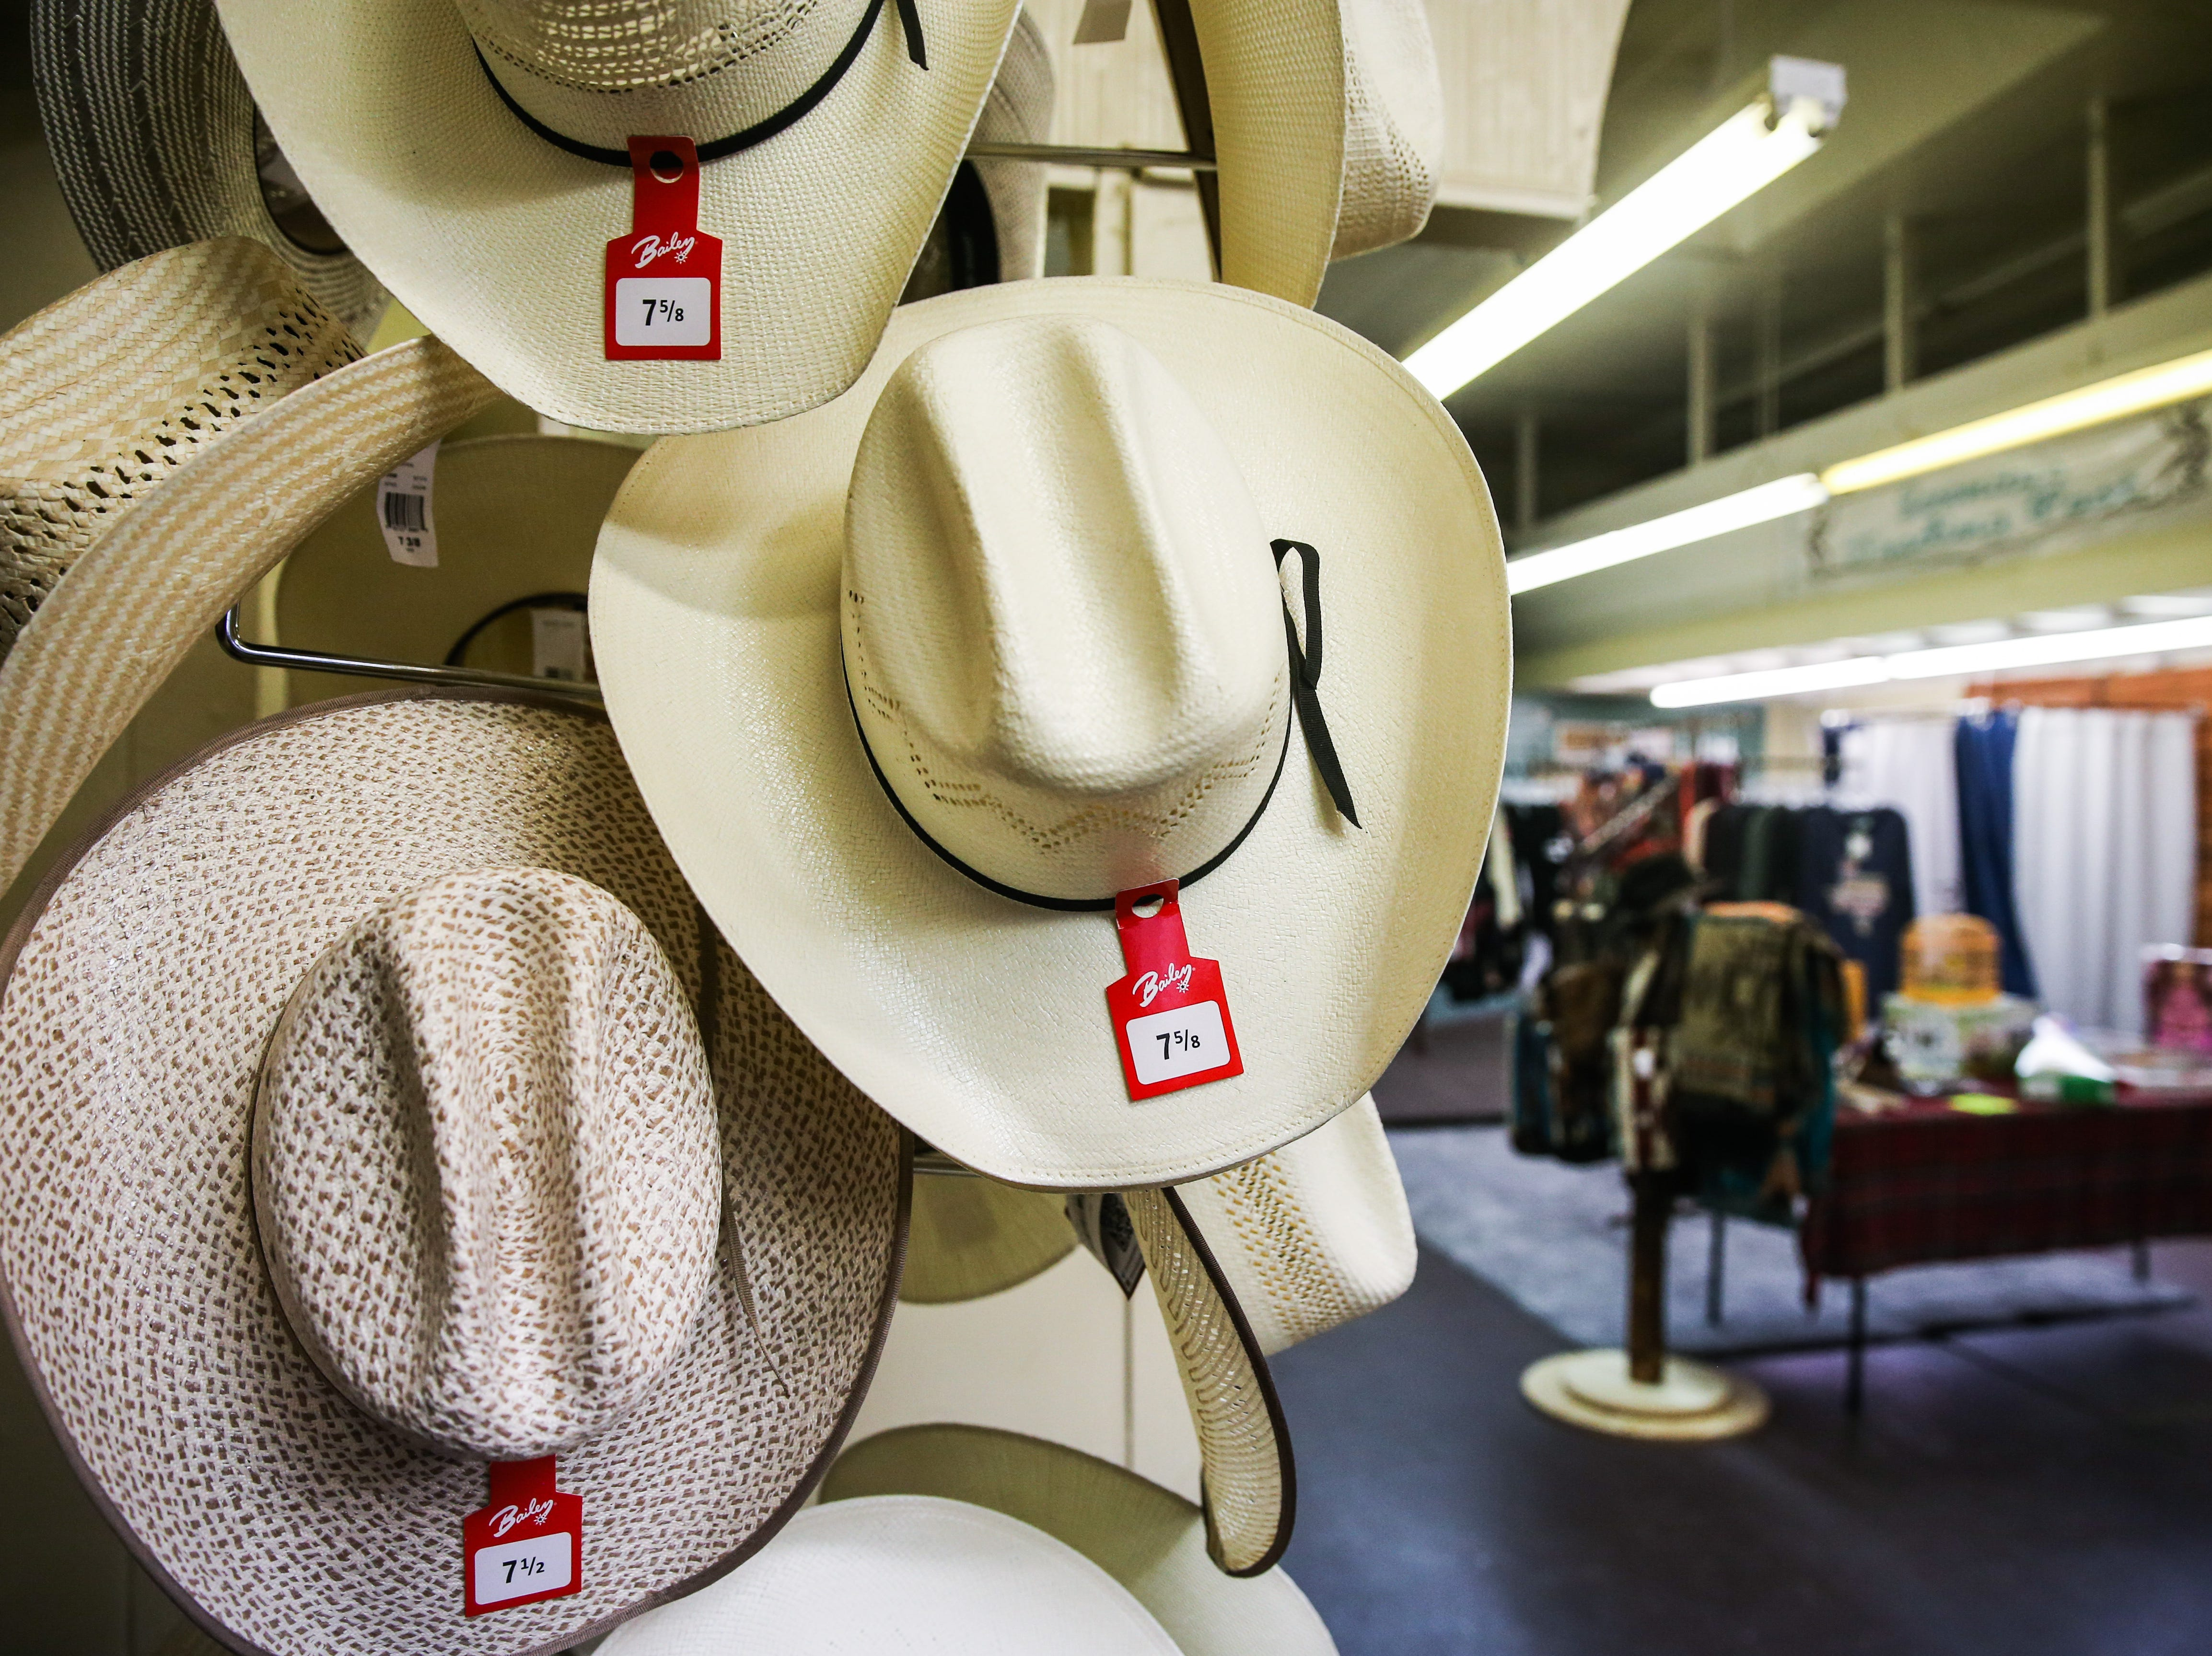 Western hats on display at Serenity's Trading, 8 E. ConchoAve.